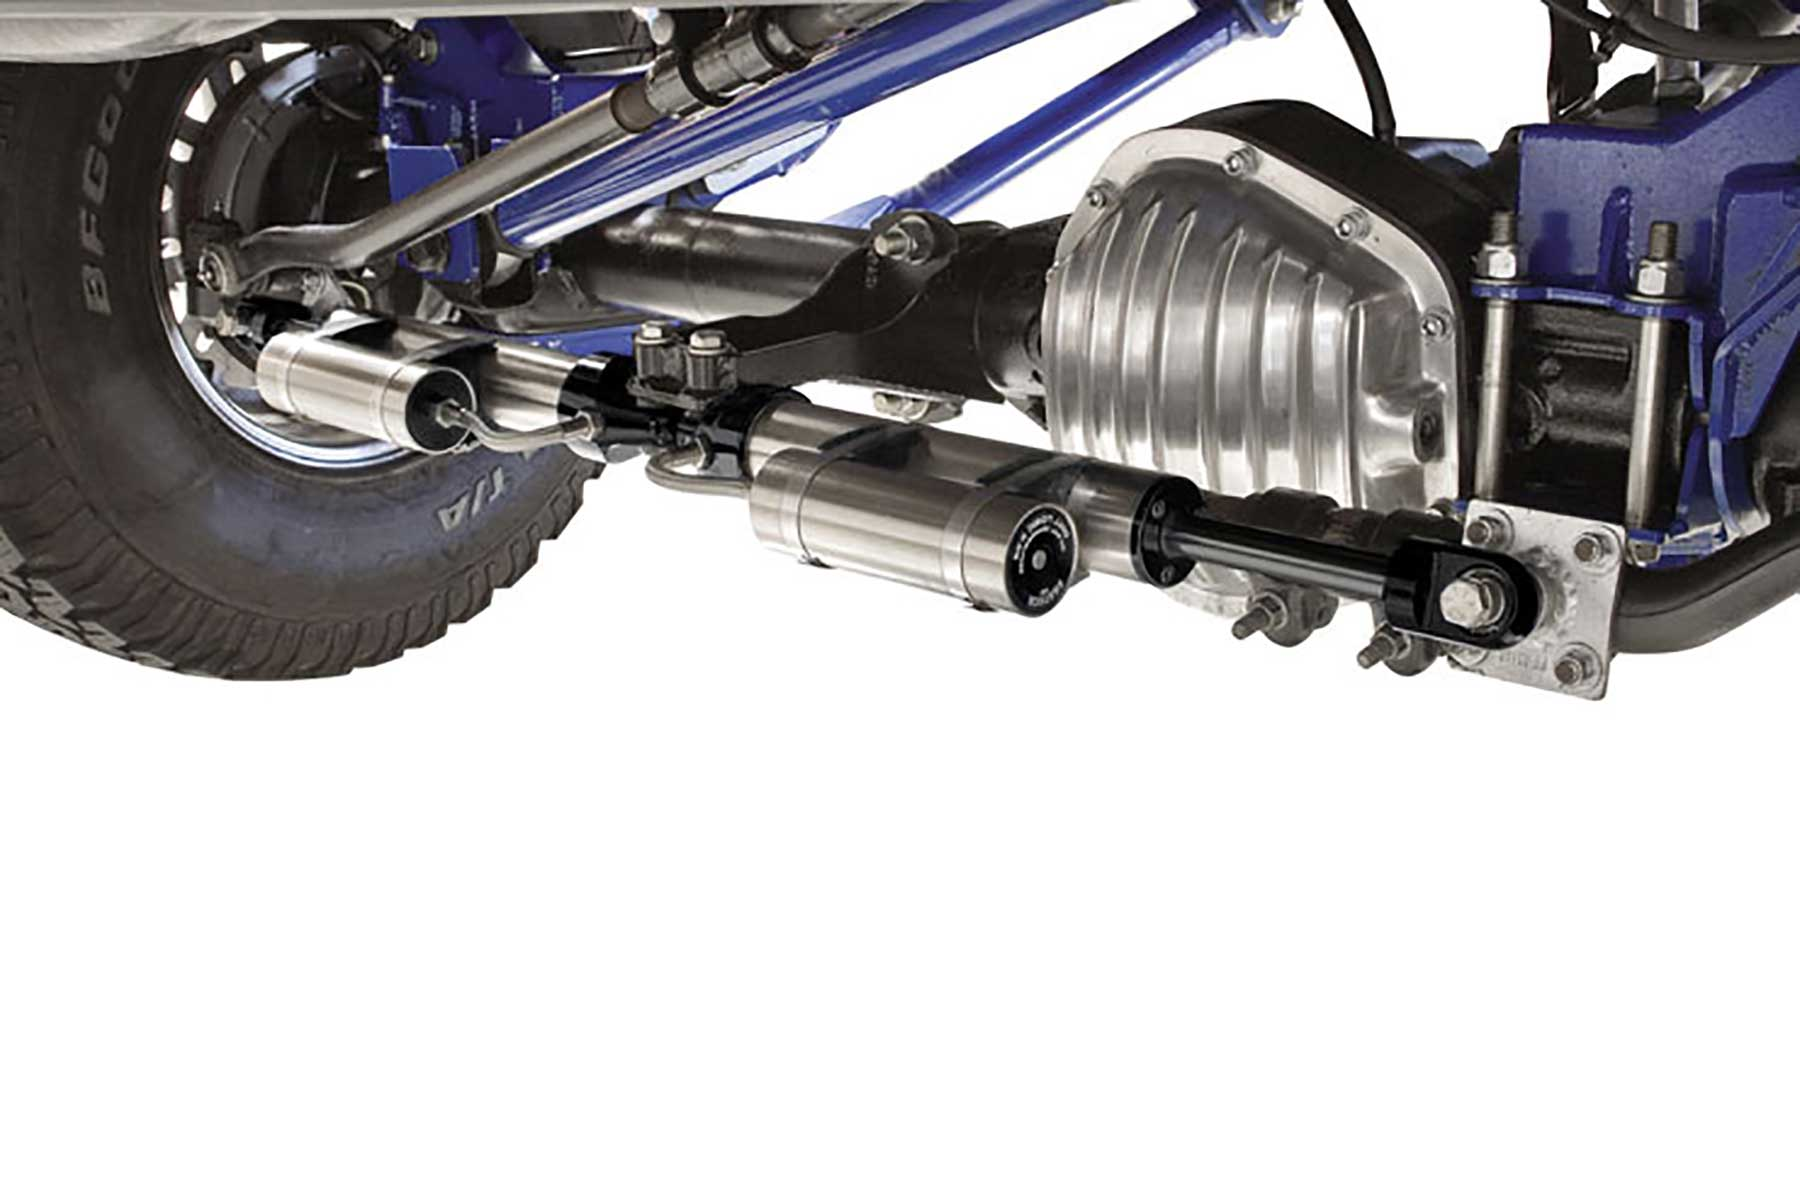 Ford Excursion 2015 >> Dual Steering Stabilizer System w/ Dirt Logic 2.25 Resi Shocks - FTS221152 | Fabtech Motorsports